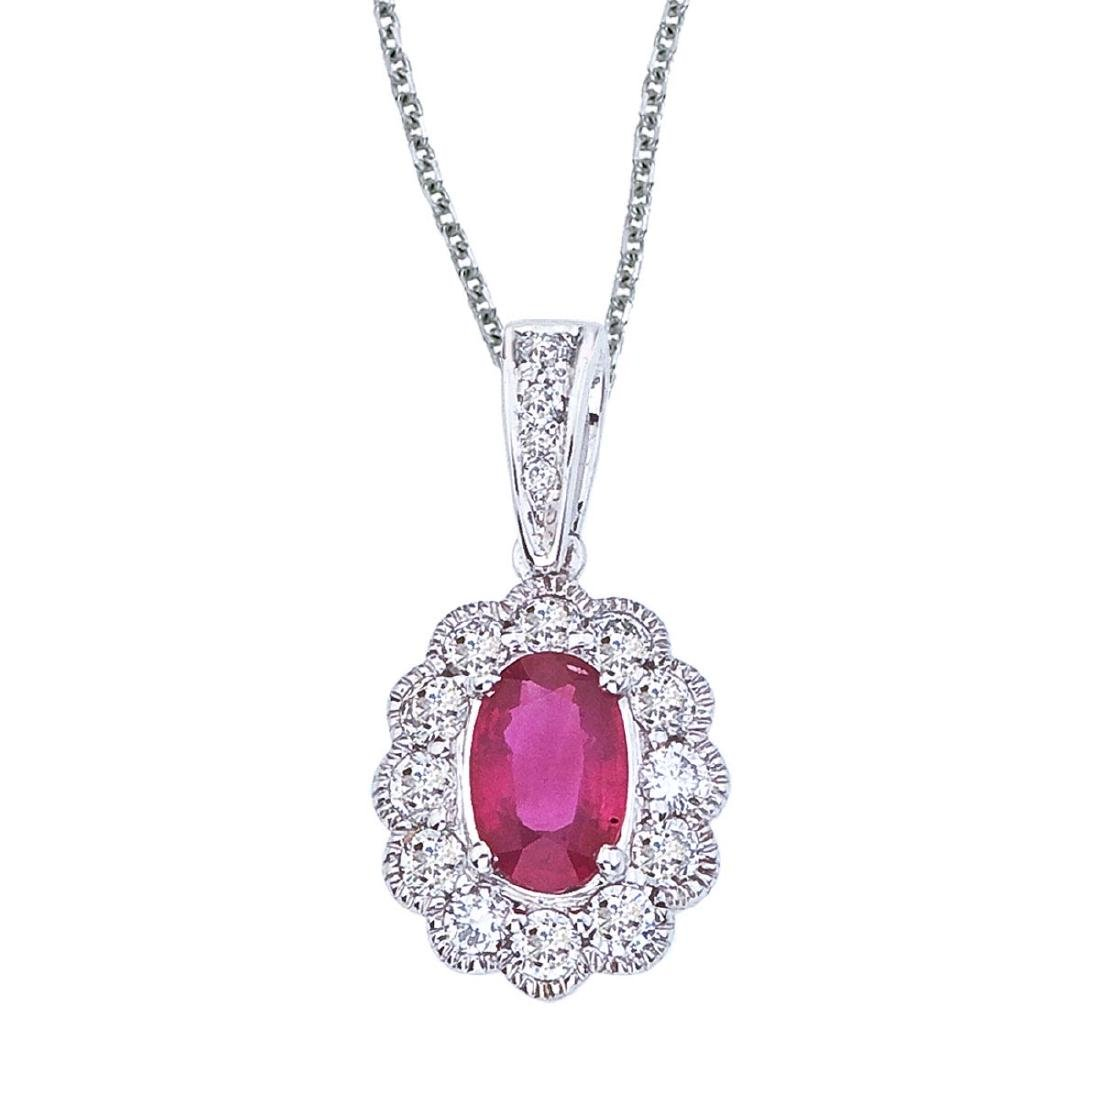 Certified 14k White Gold Ruby and Diamond Oval Pendant